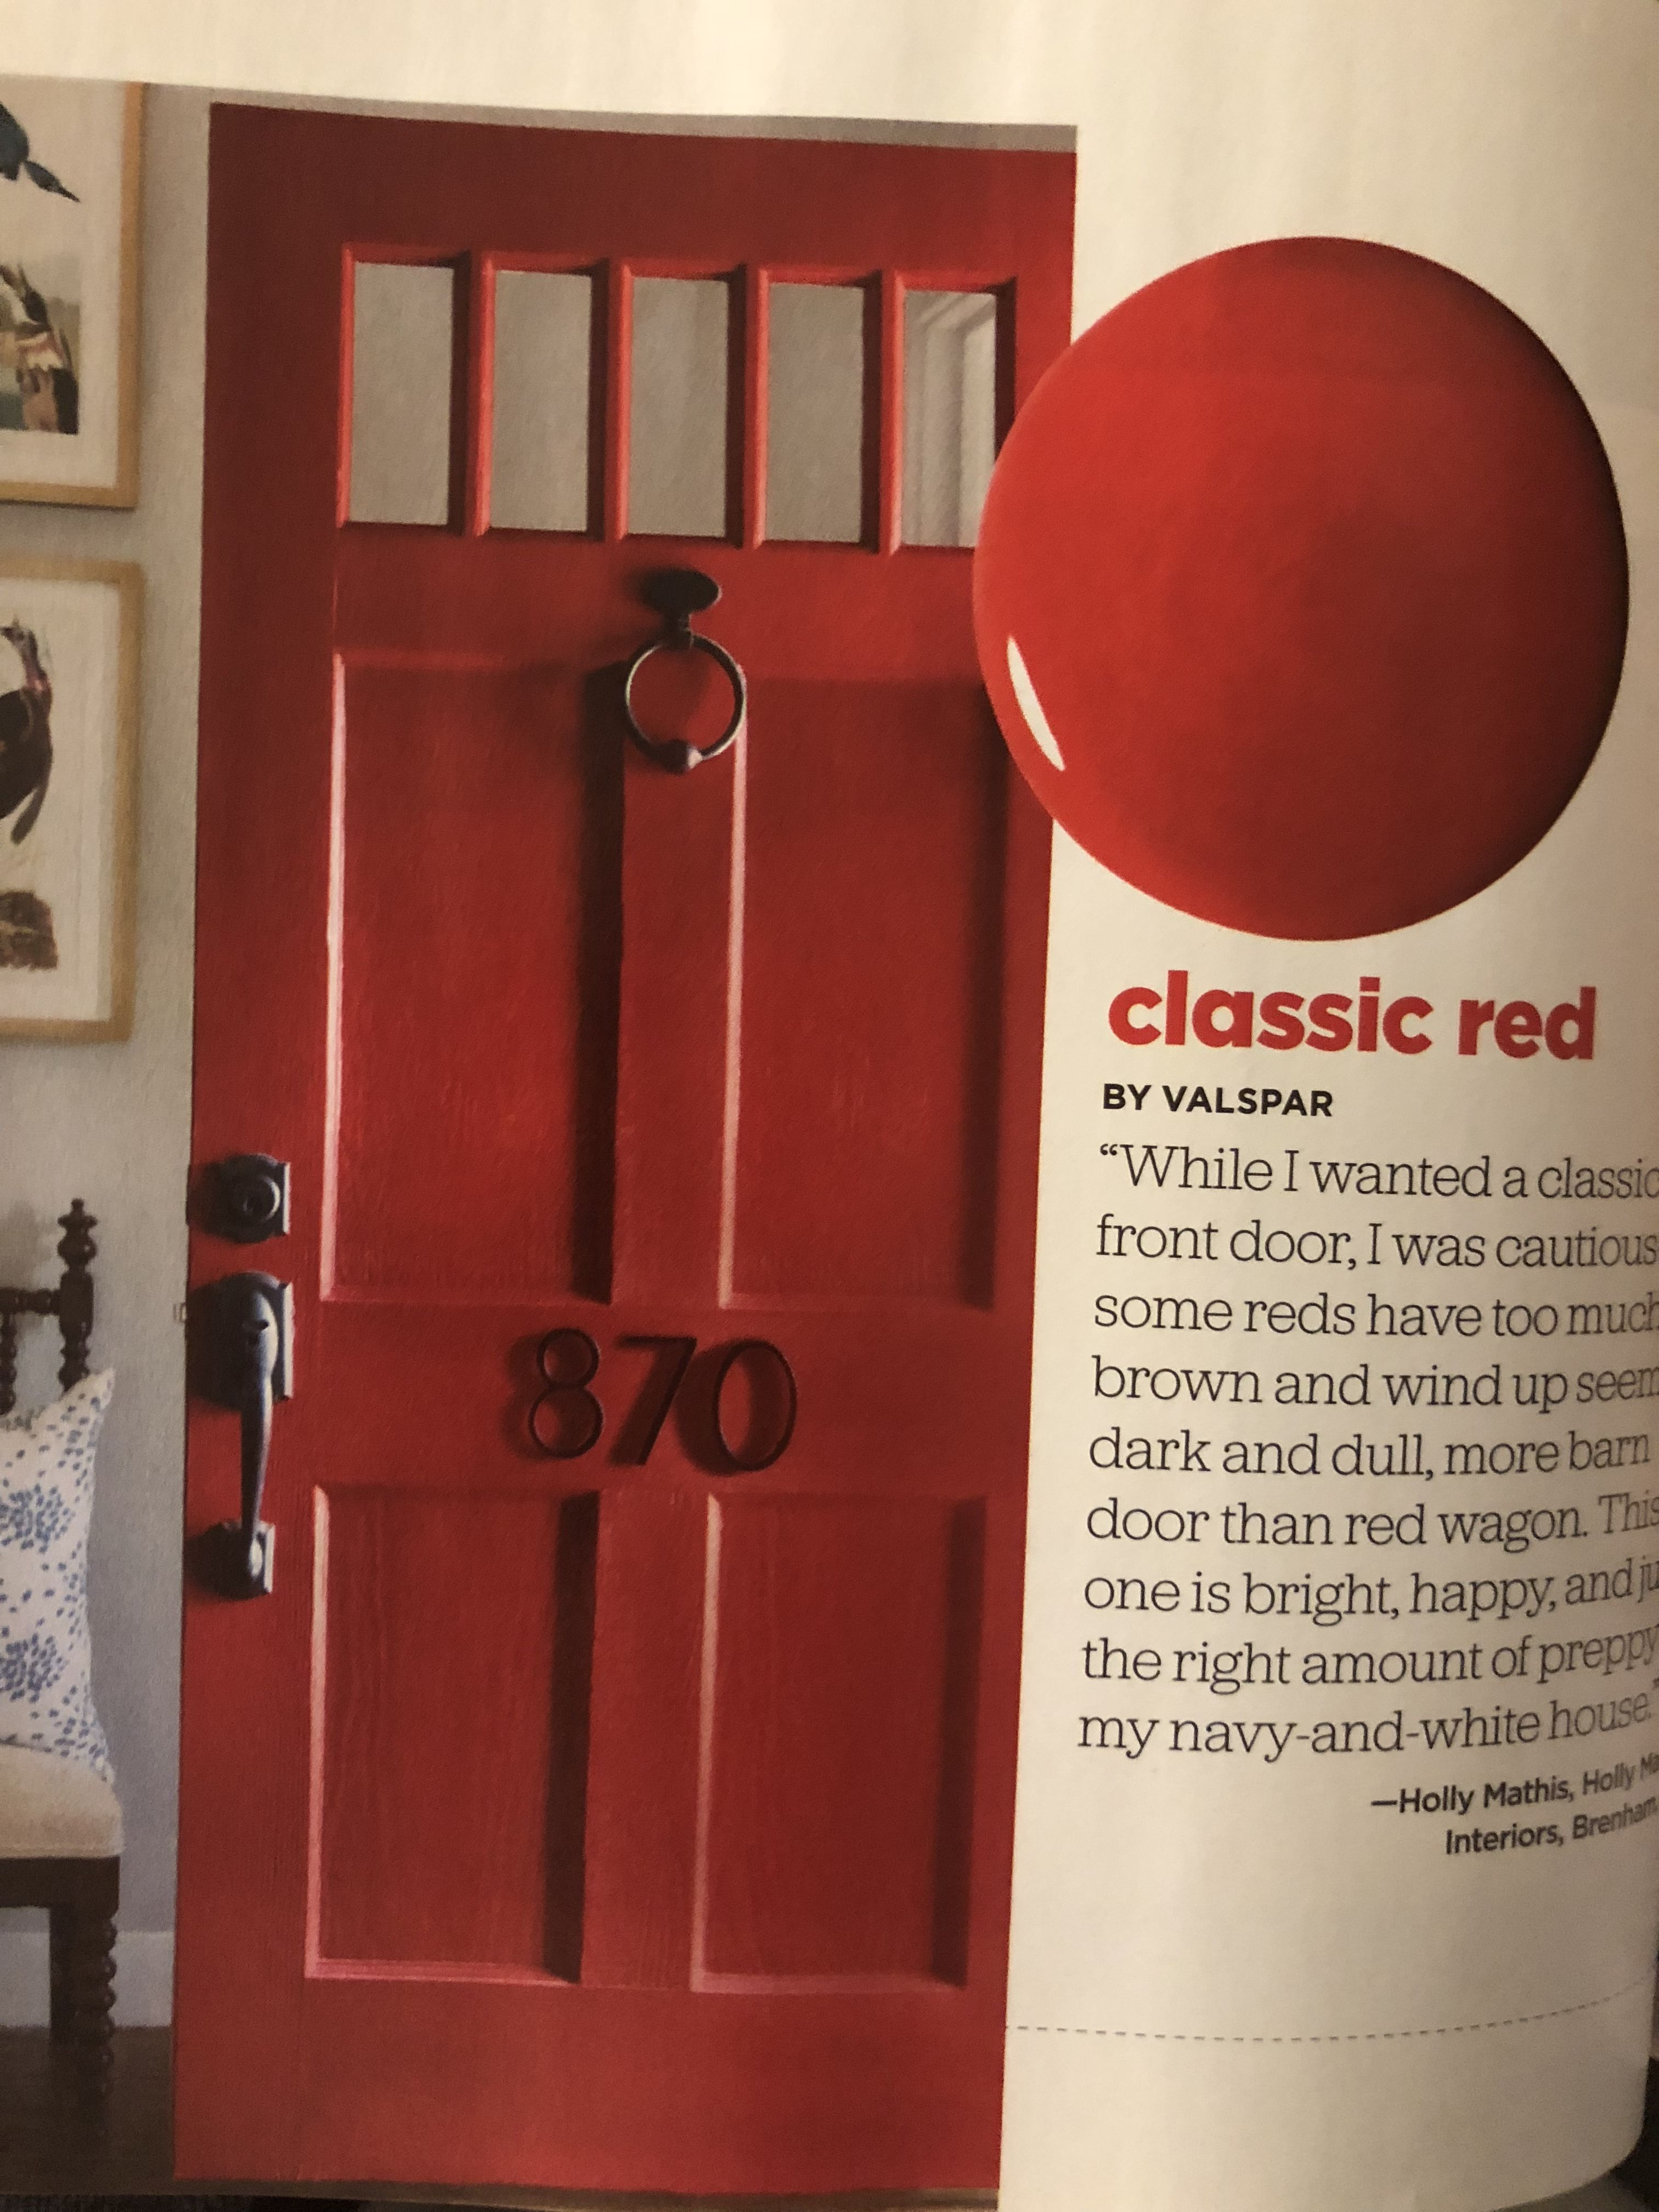 Classic Red By Valspar Red Paint Colors Red Wagon Red Barns